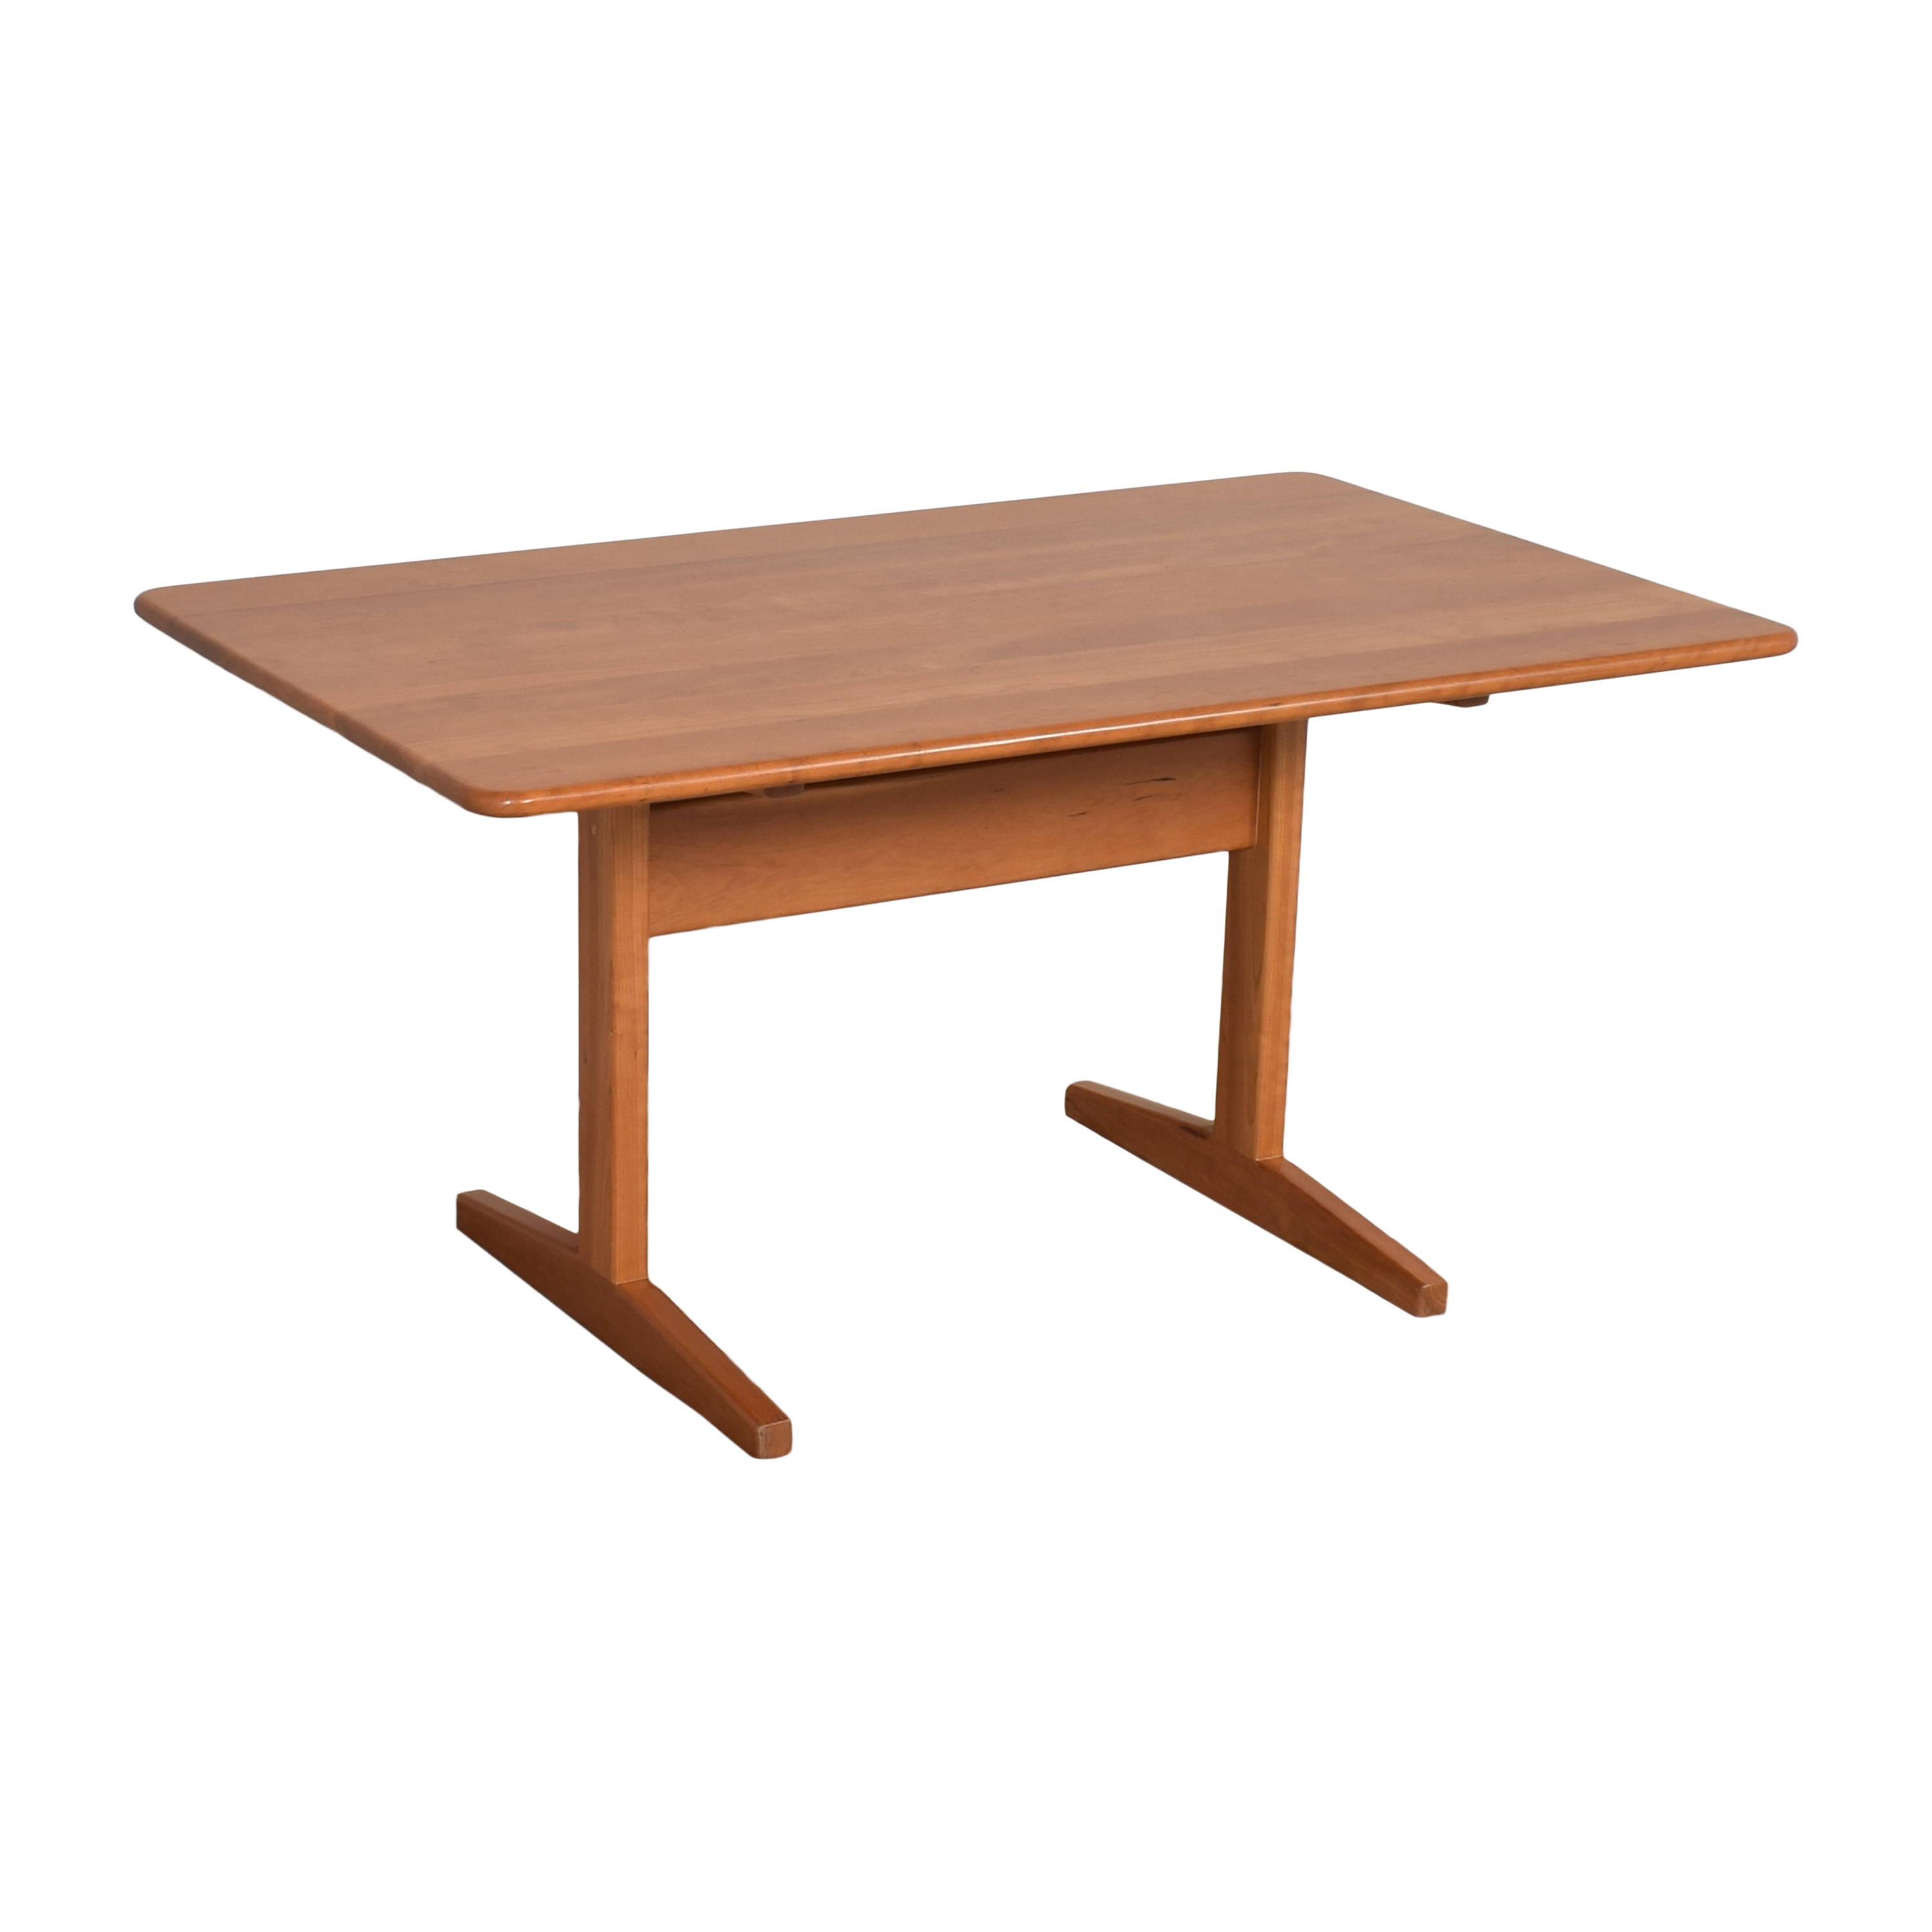 Pompanoosuc Mills Pompanoosuc Mills Trestle Dining Table Tables